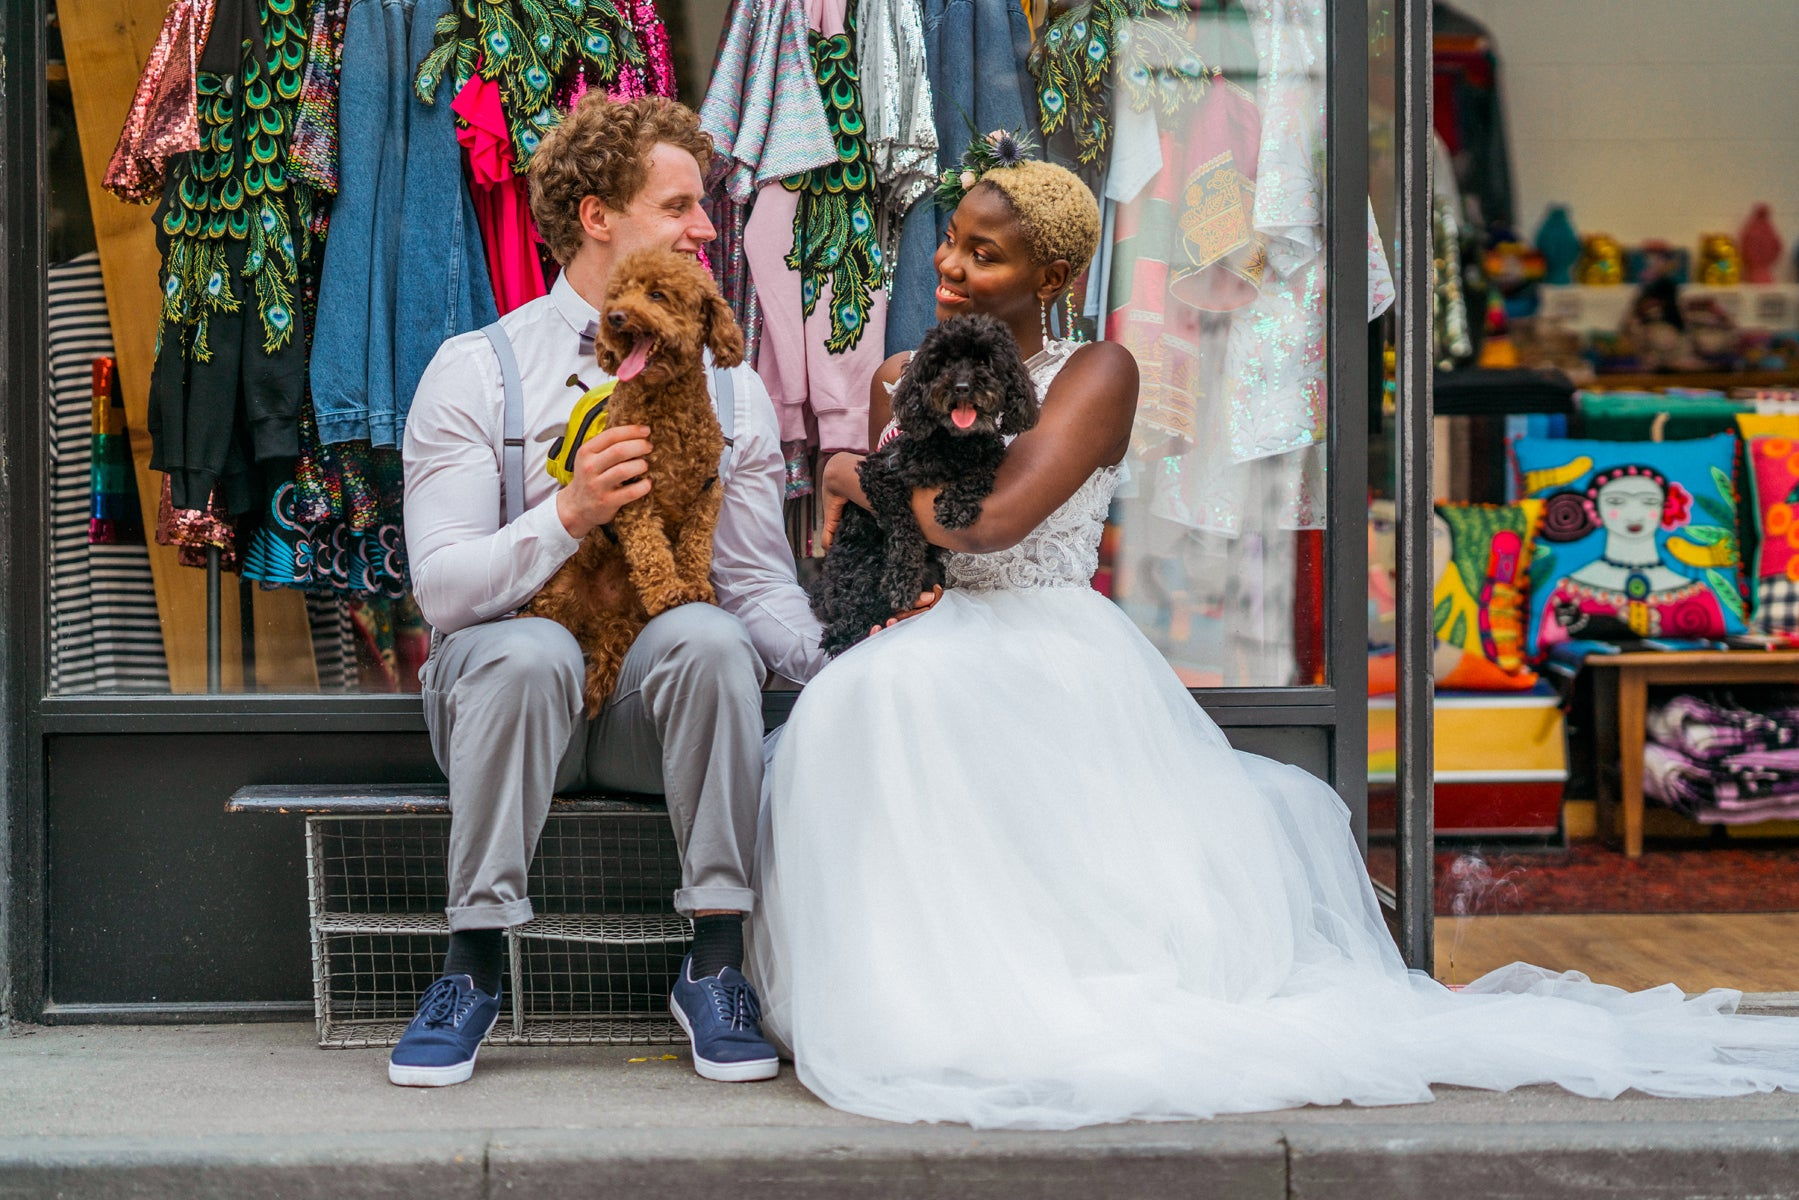 Wedding Couple with Cute Instagram Dogs